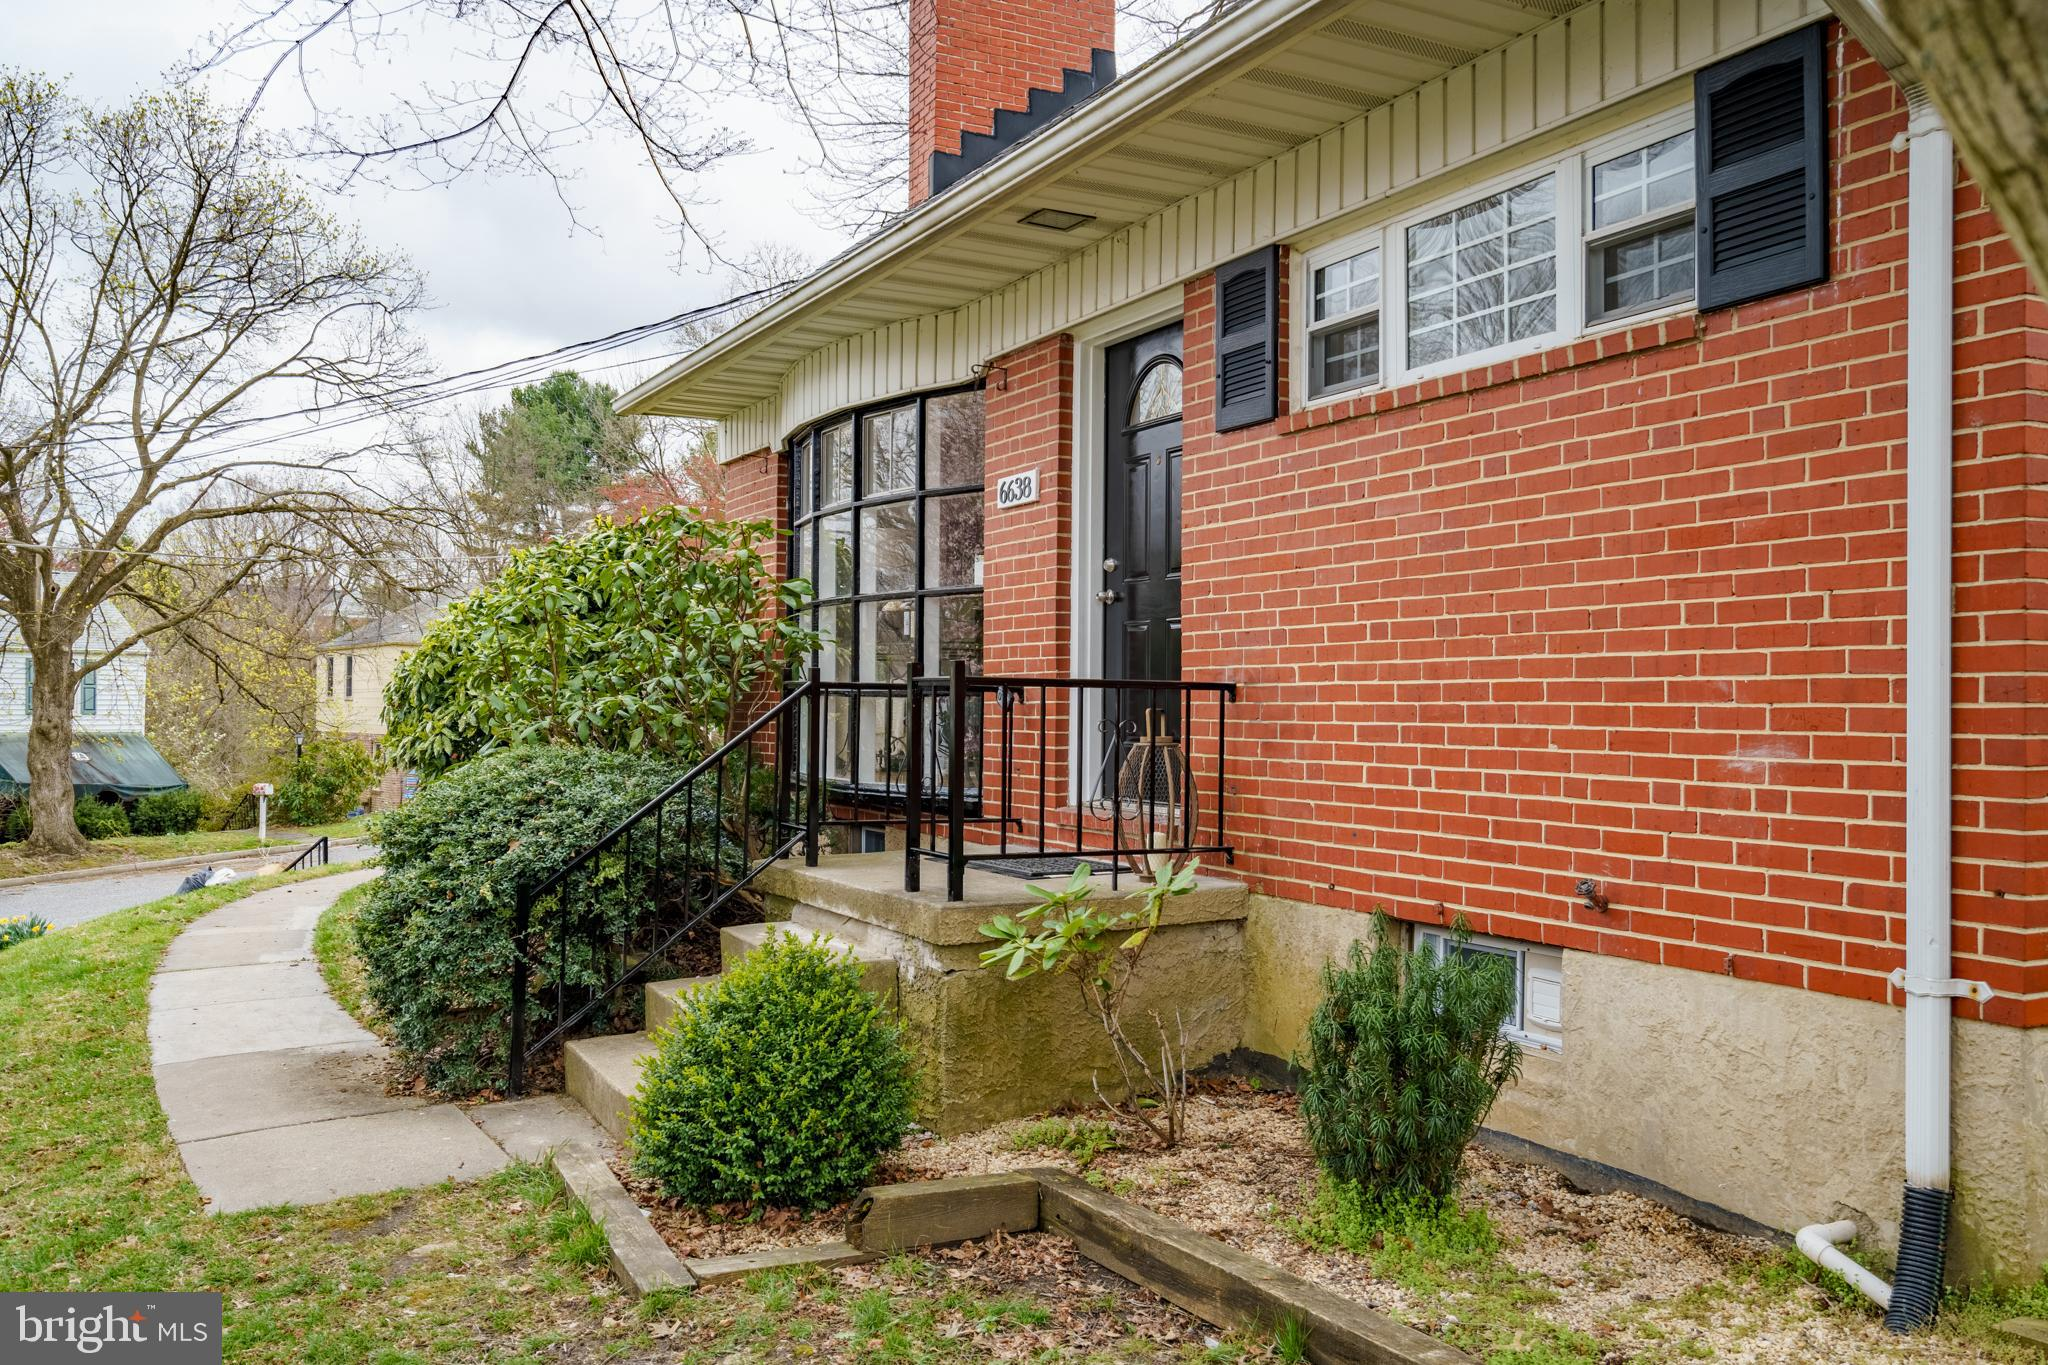 6638 LOCH HILL ROAD, BALTIMORE, MD 21239